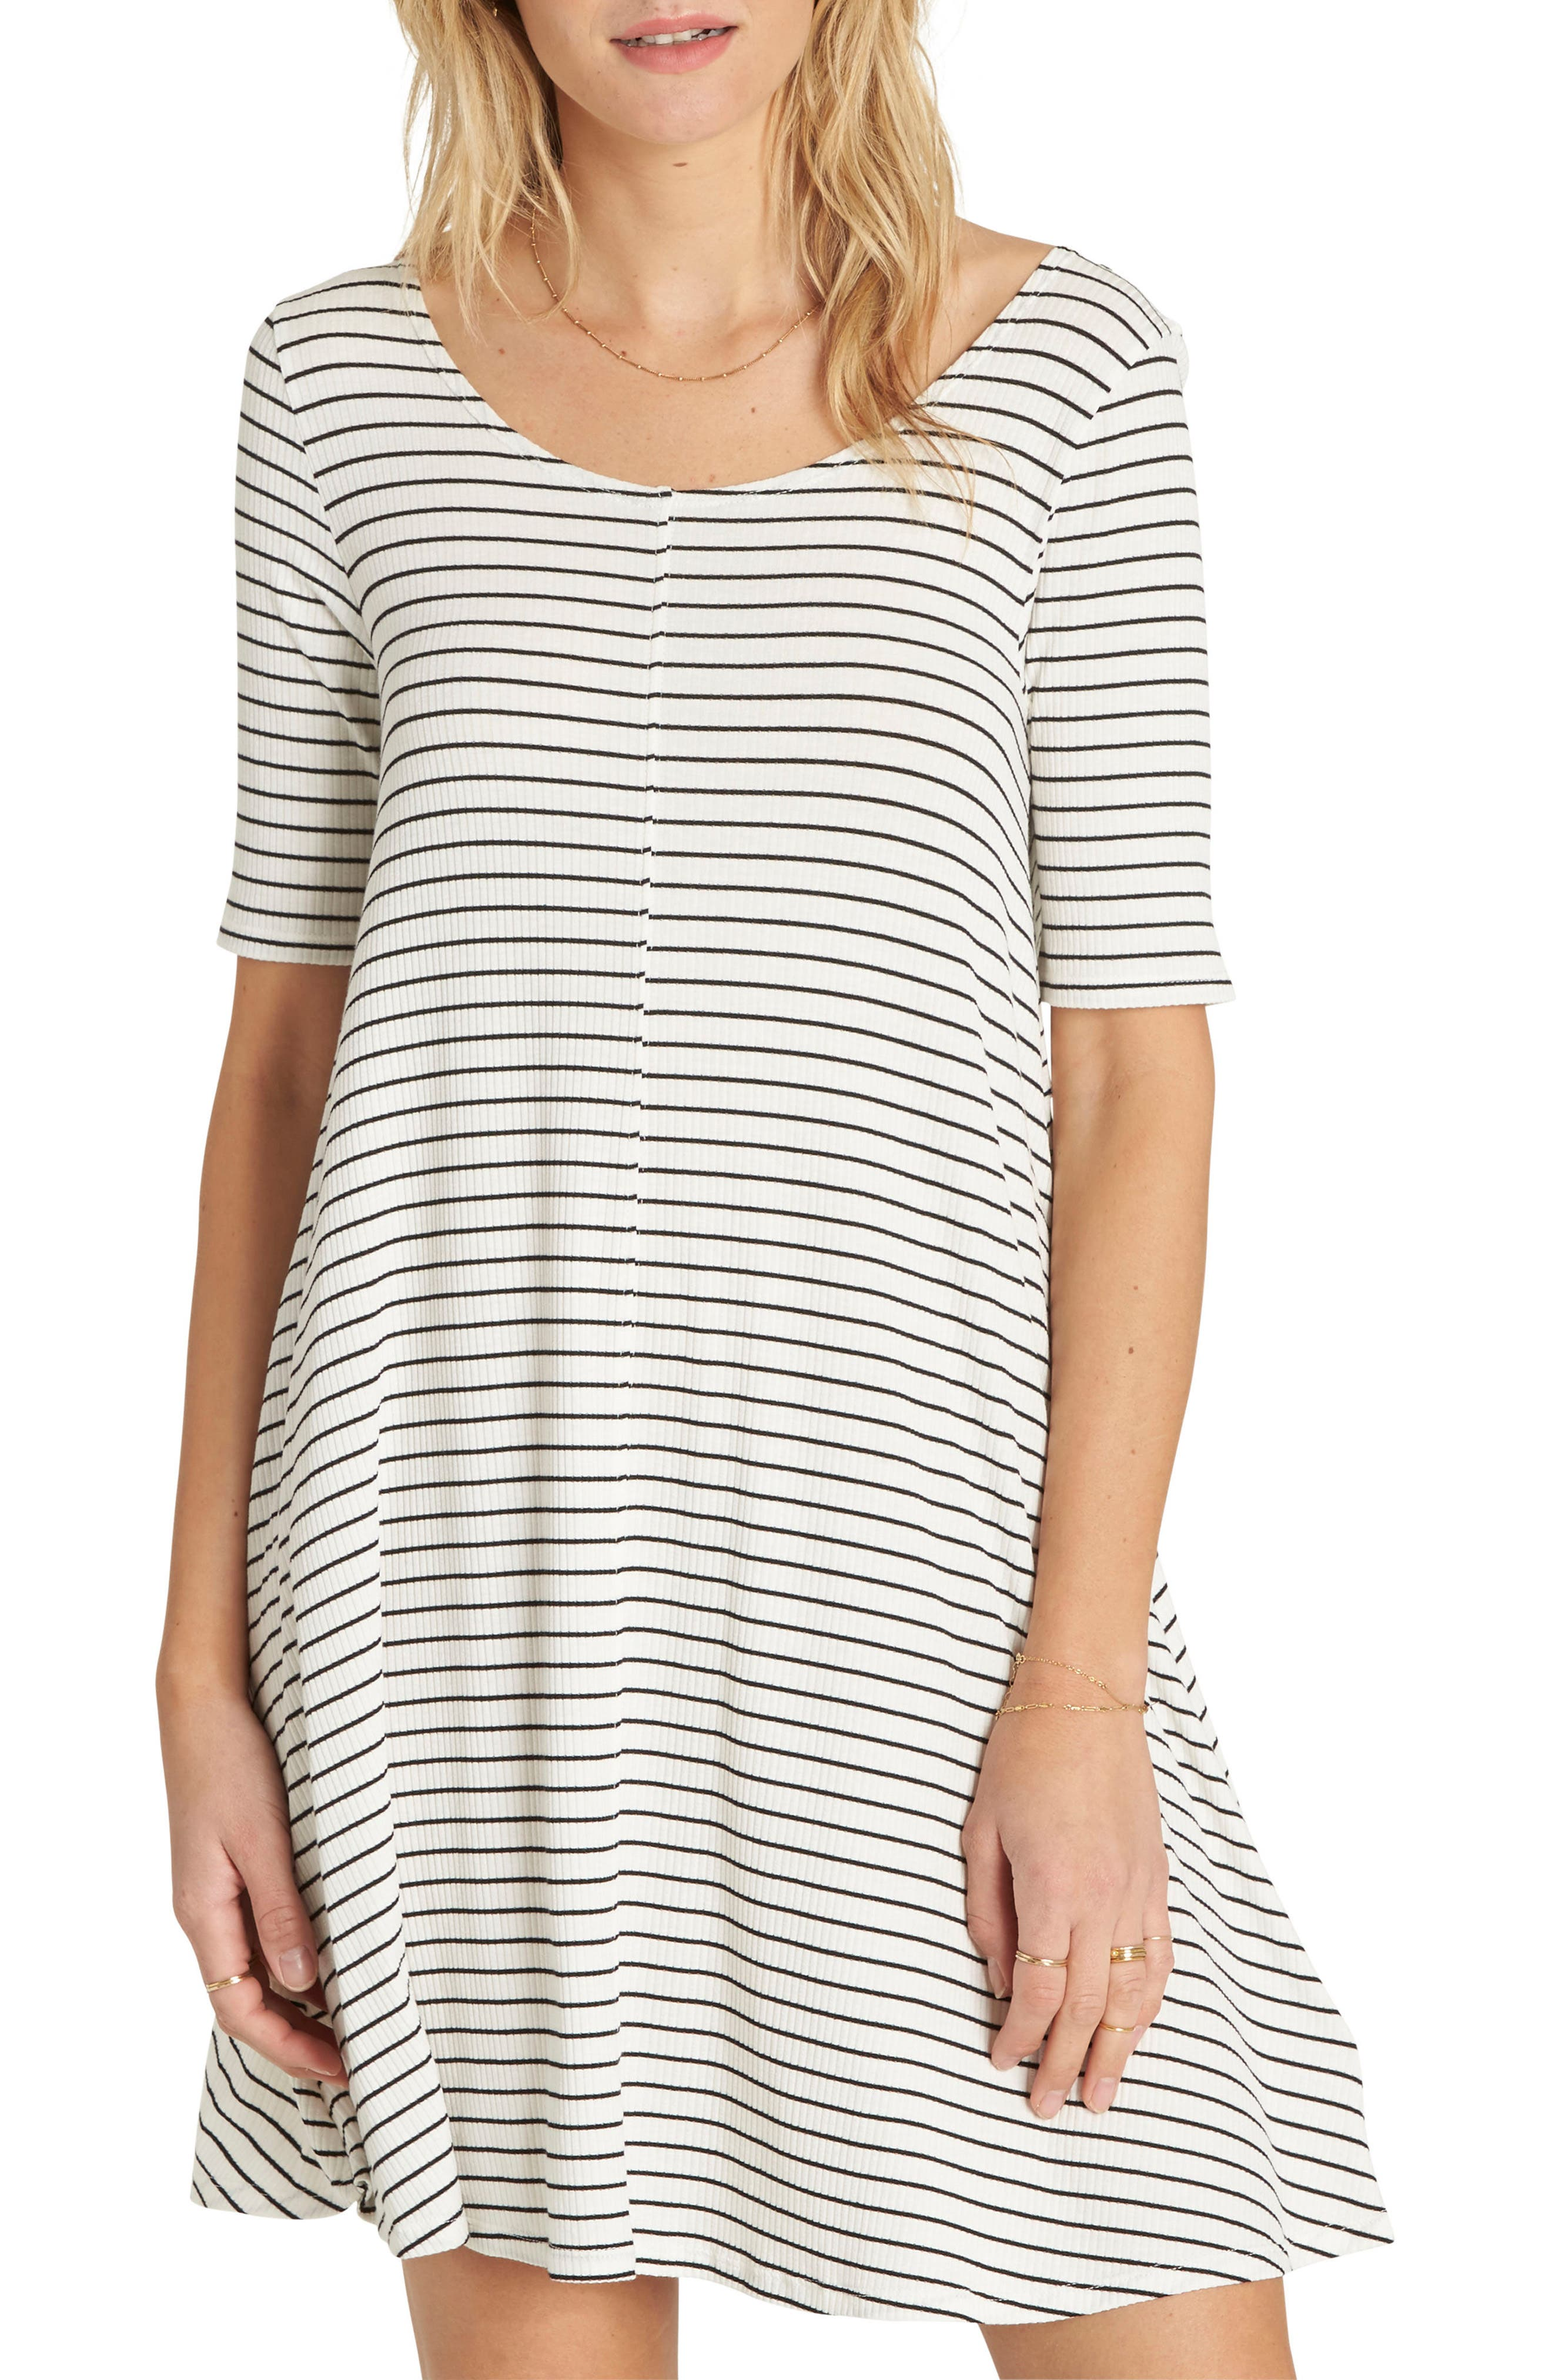 Nothing to Hide Ribbed T-Shirt Dress,                         Main,                         color, Black/ White